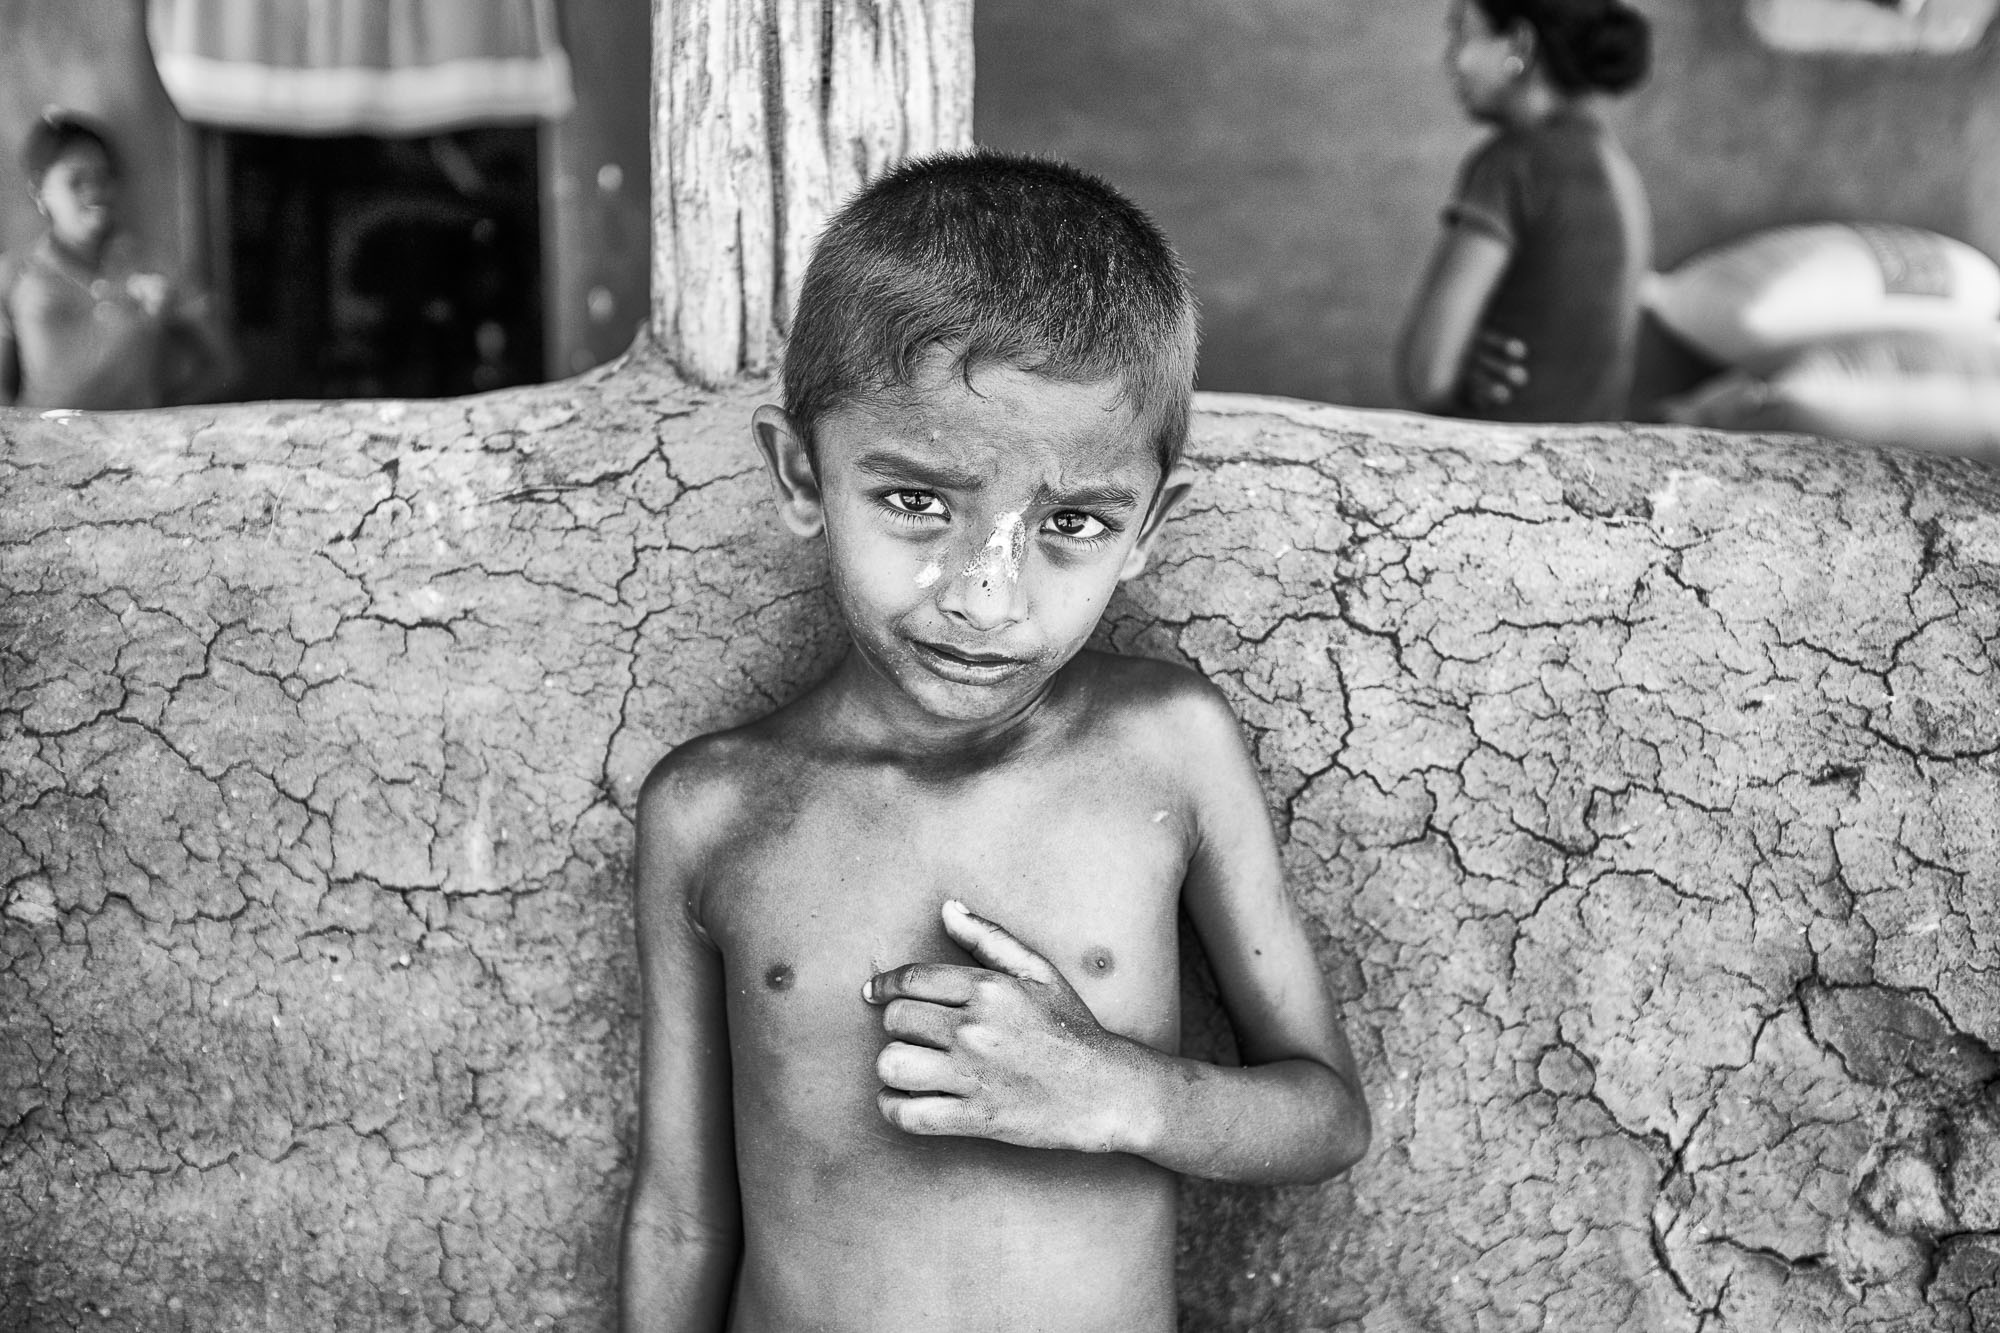 Vedda sri lanka indingenous group people photography - veddas photograph kid looking to the camera